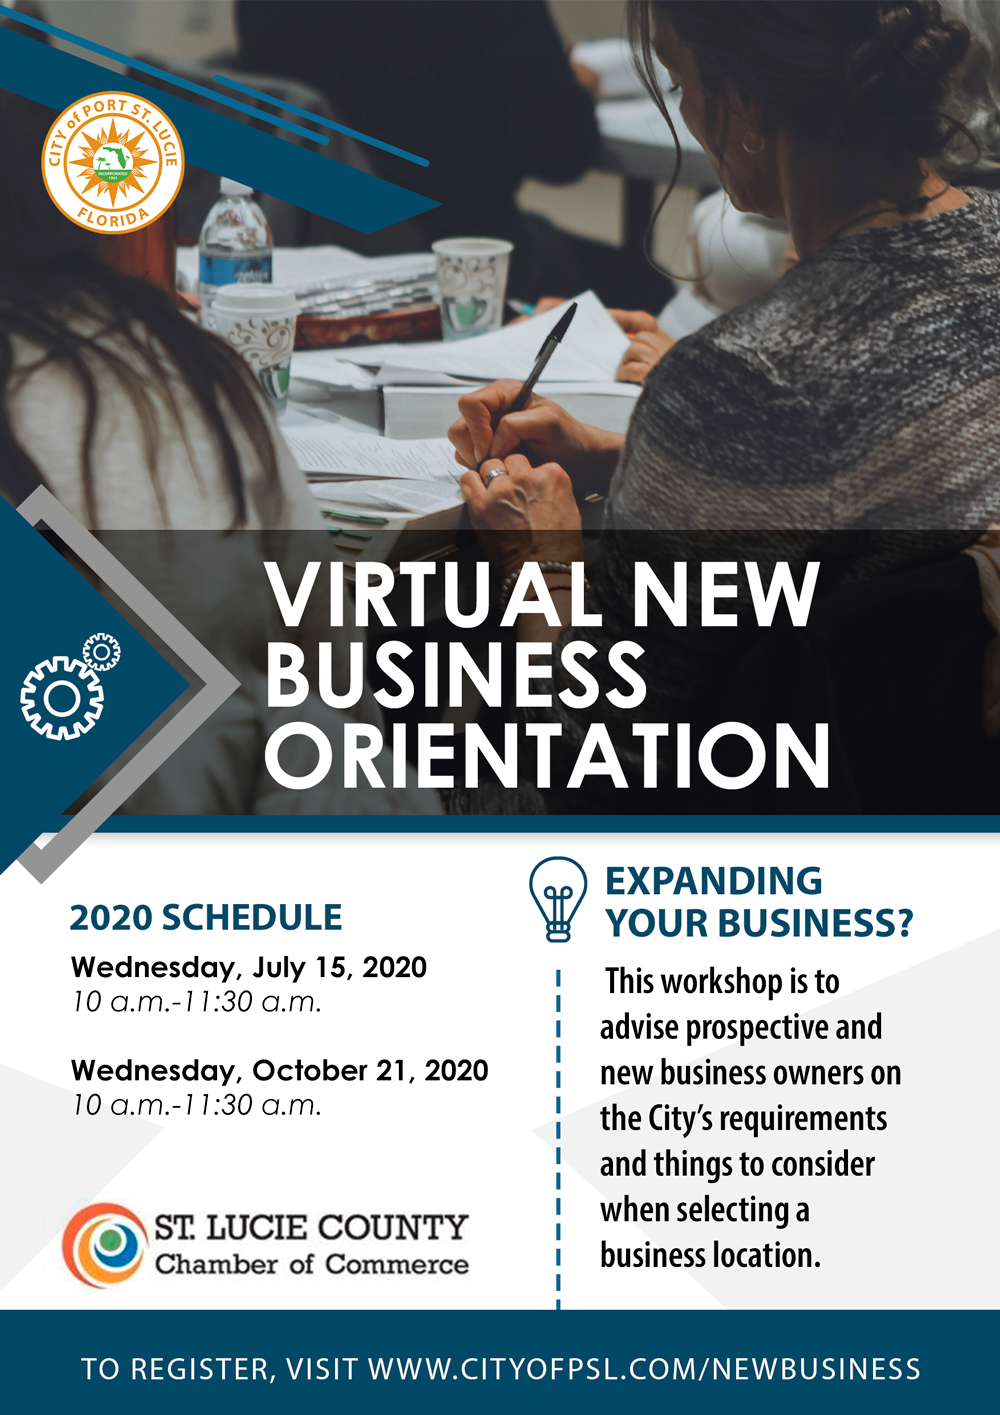 Virtual New Business Orientation Flyer 2020